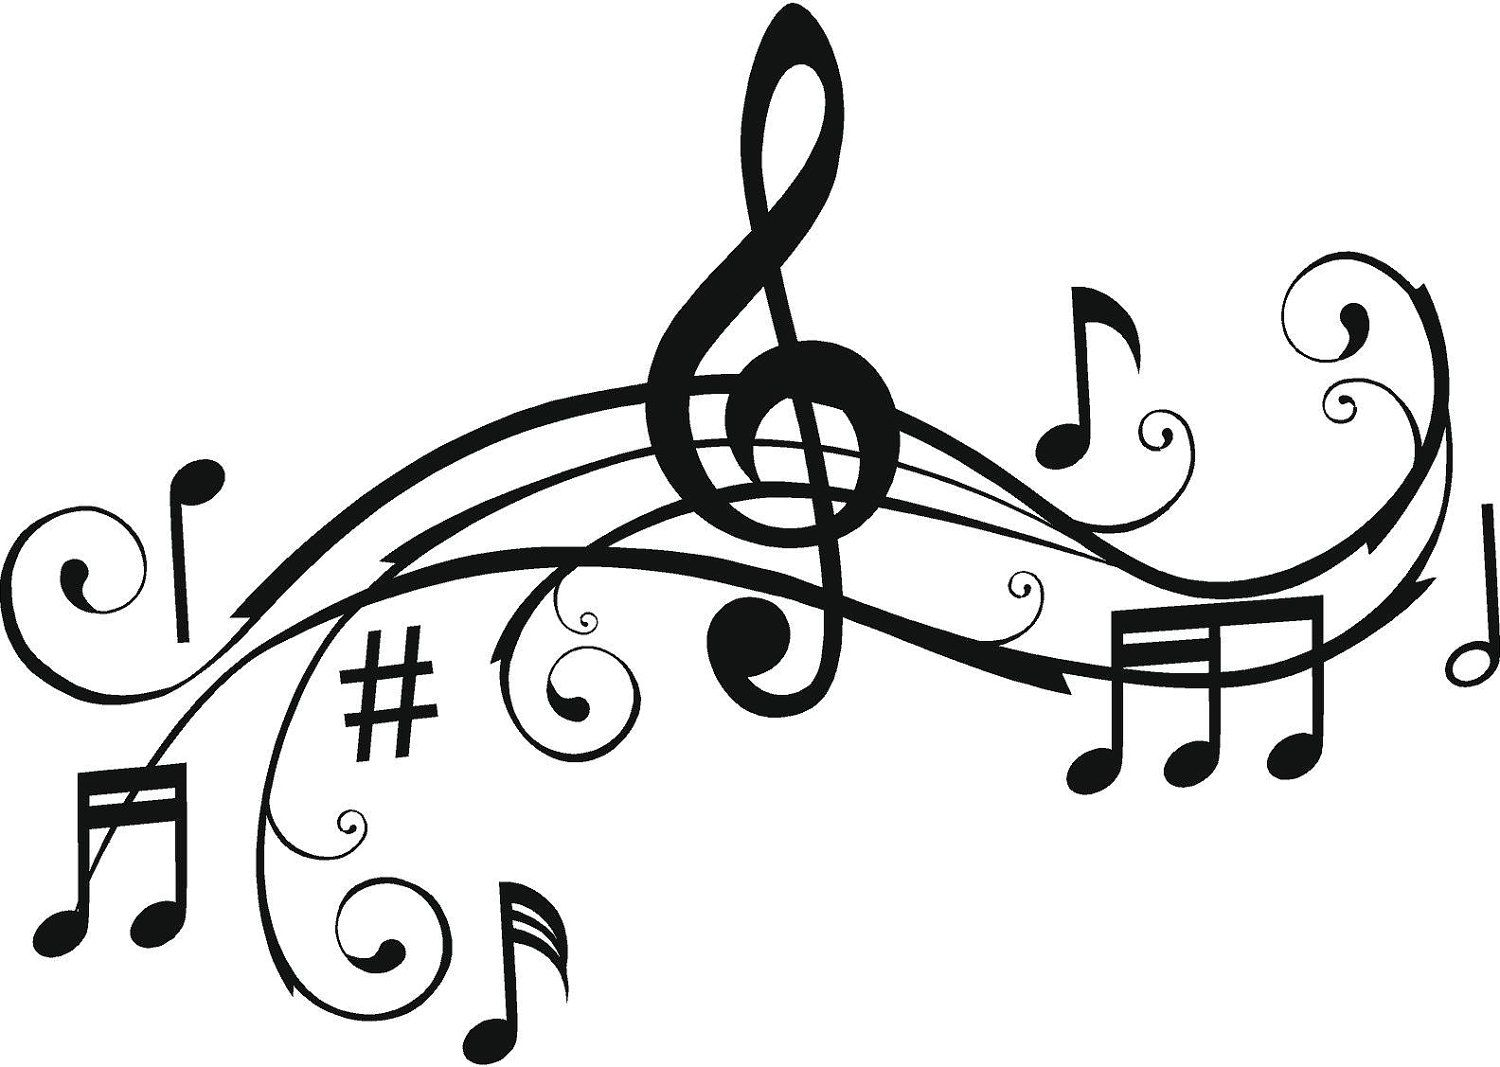 Free Printable Music Note Coloring Pages For Kids Music Notes Wall Art Music Coloring Music Notes